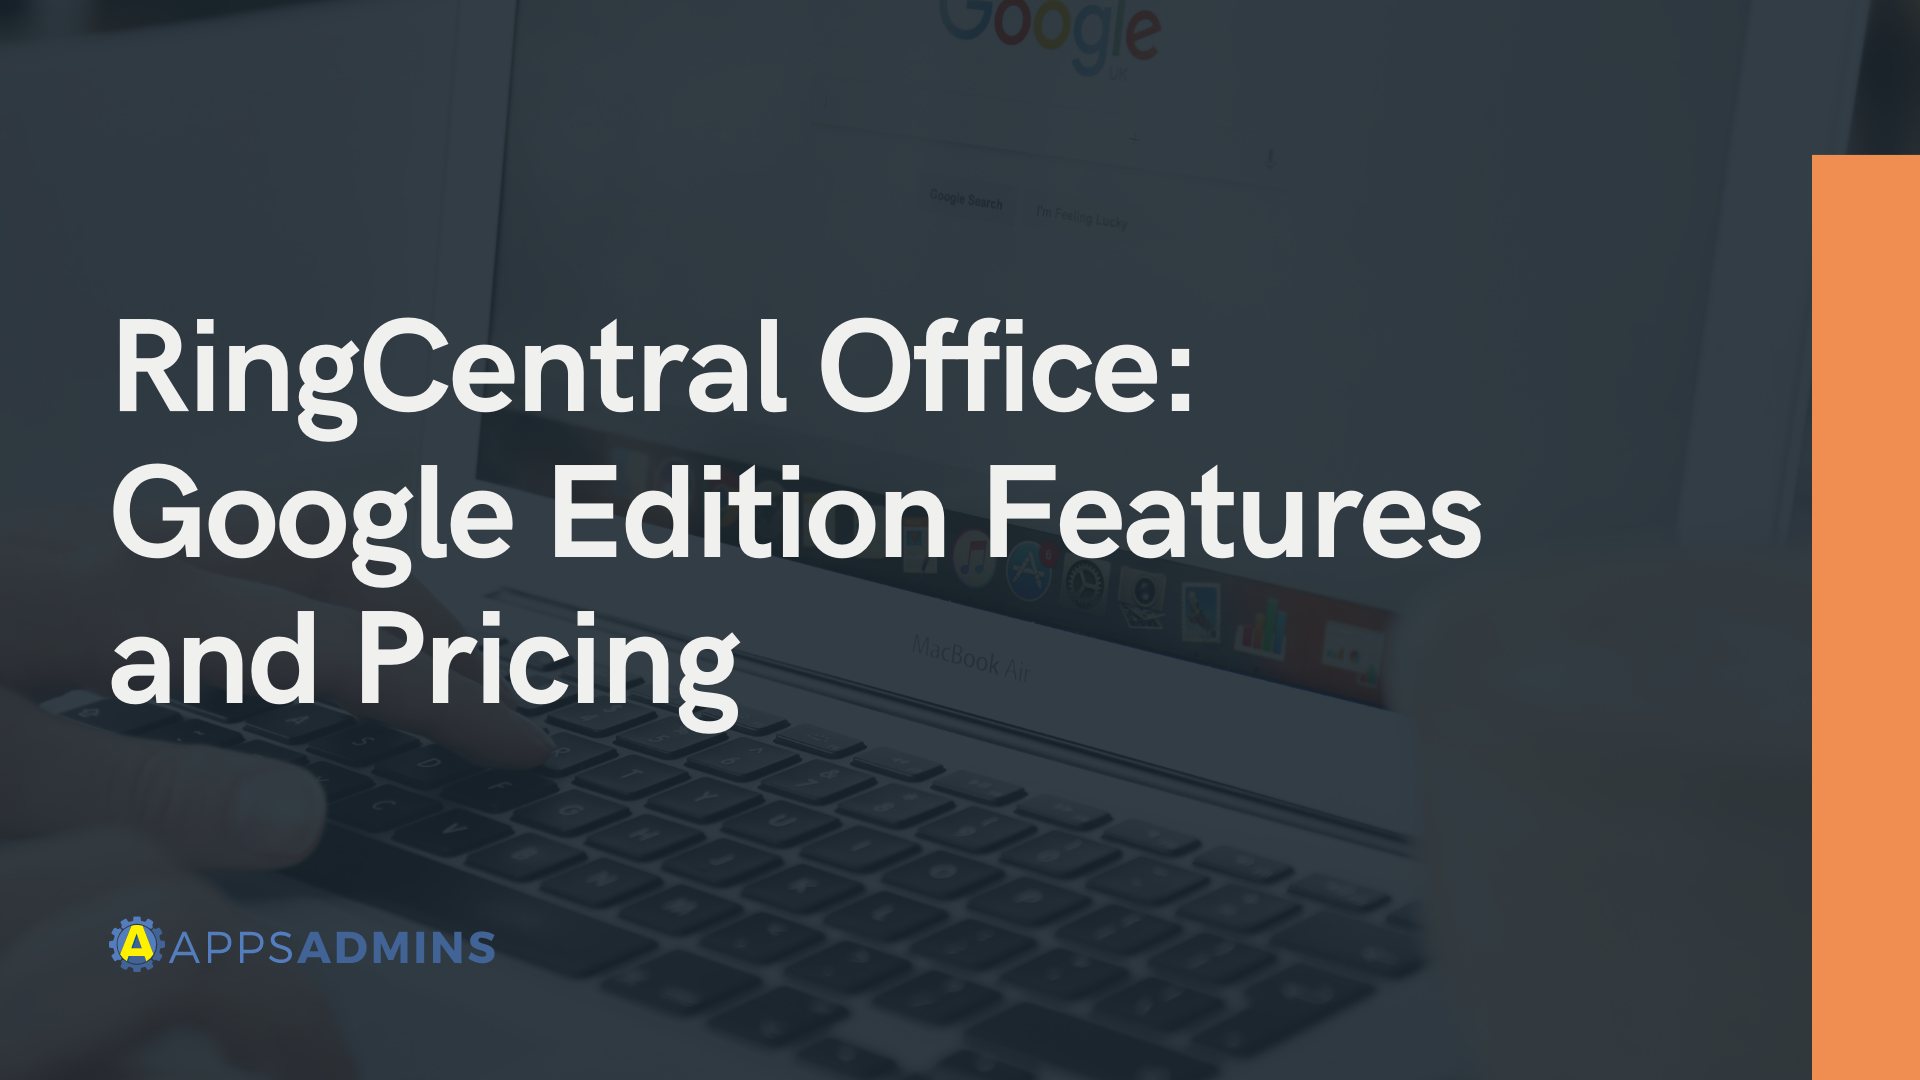 RingCentral Office Google Edition Features and Pricing